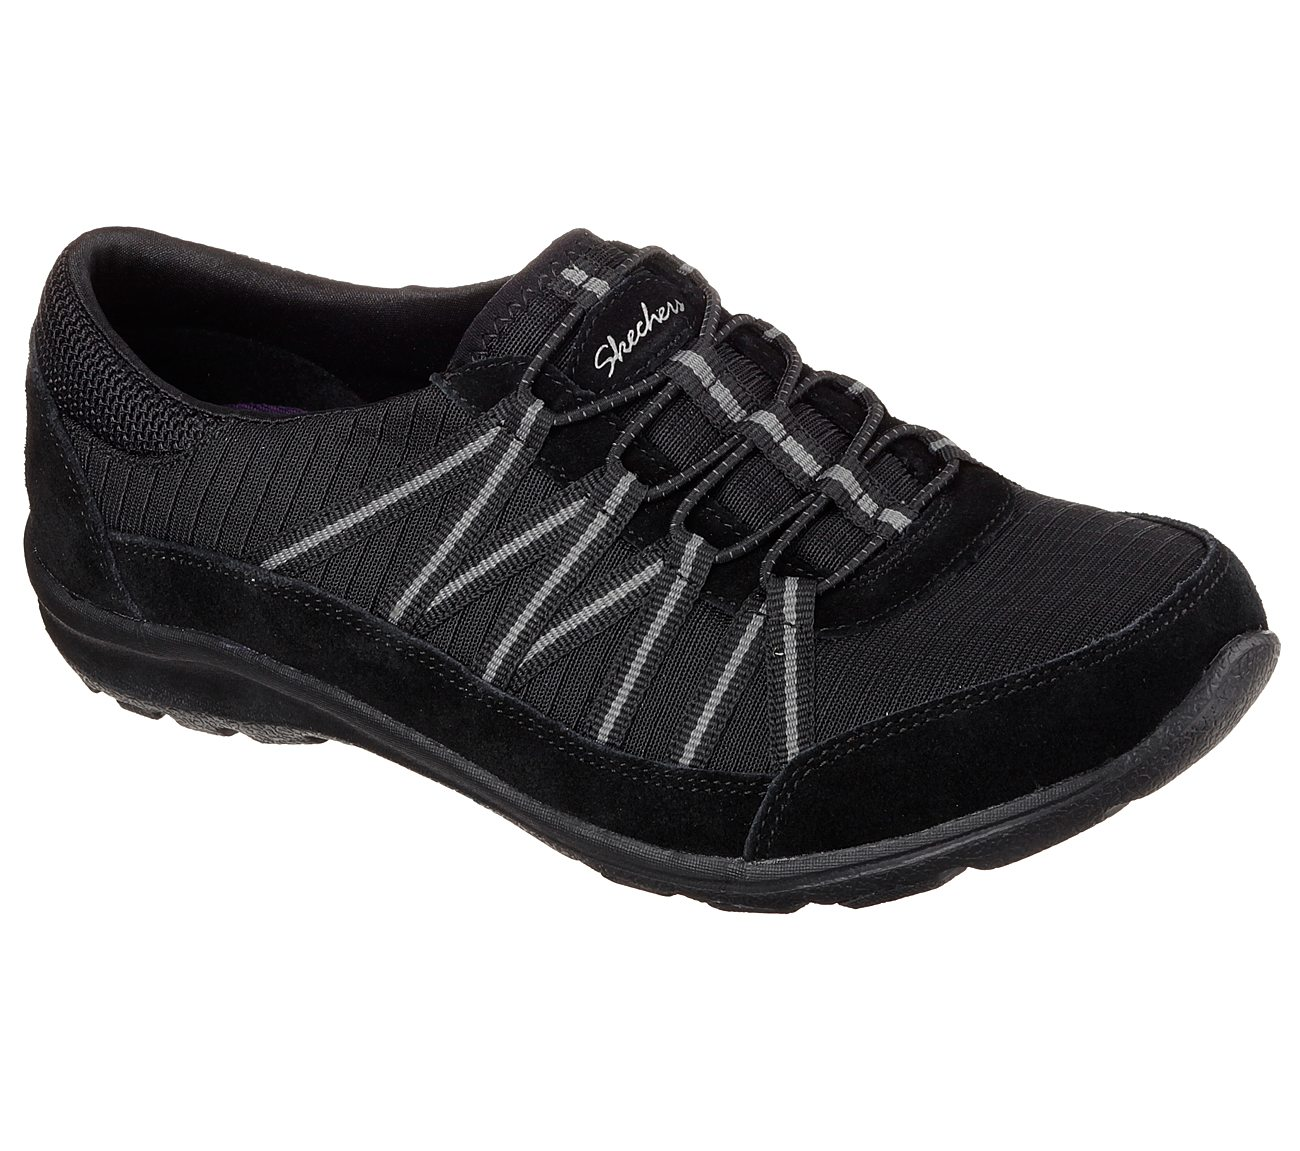 SKECHERS Dreamchaser Black Women